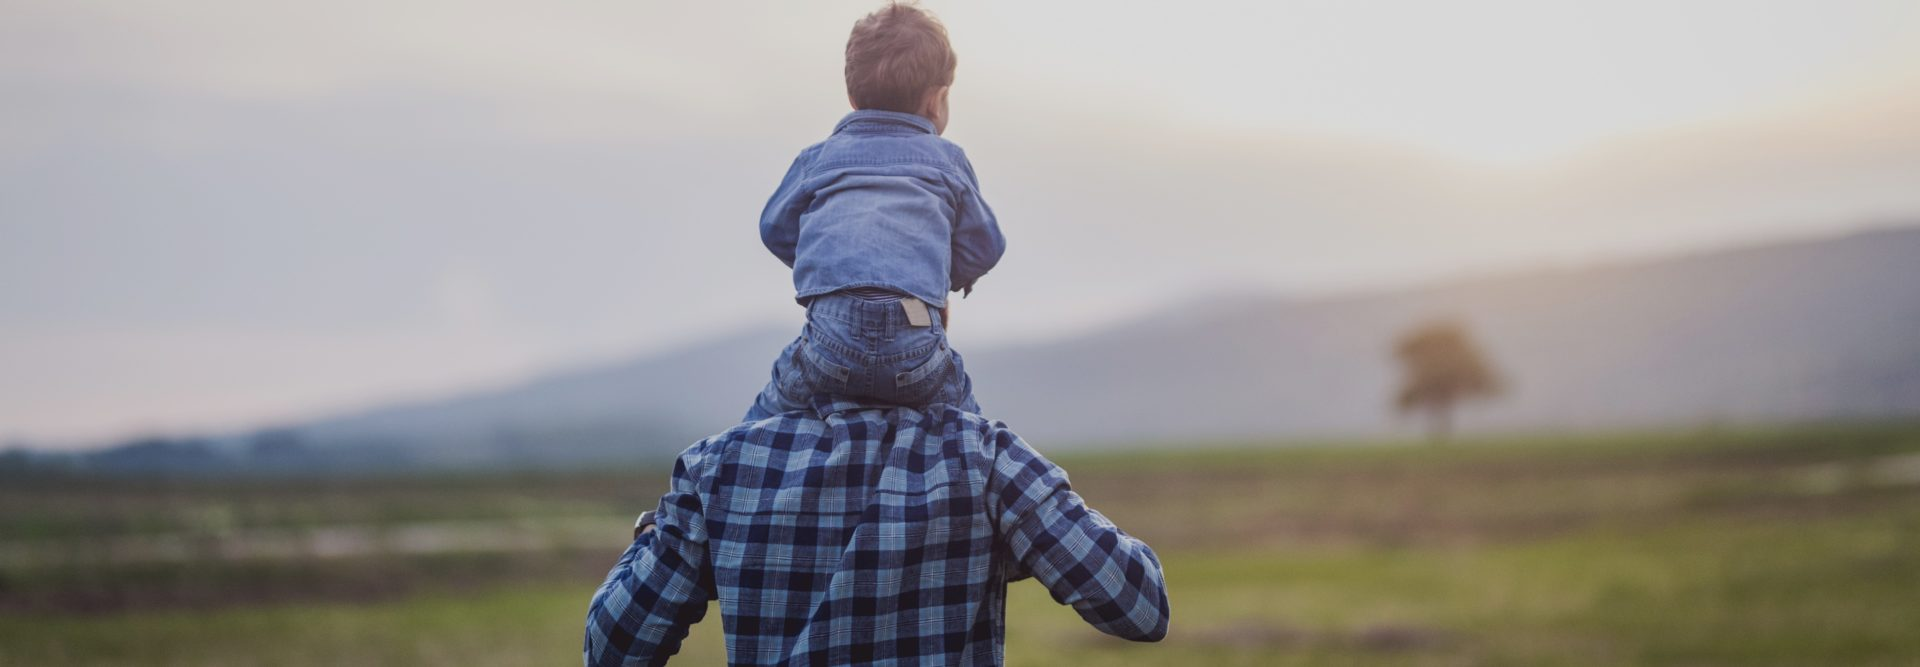 Father carries his baby boy on the shoulder while they walk through the field in the nature